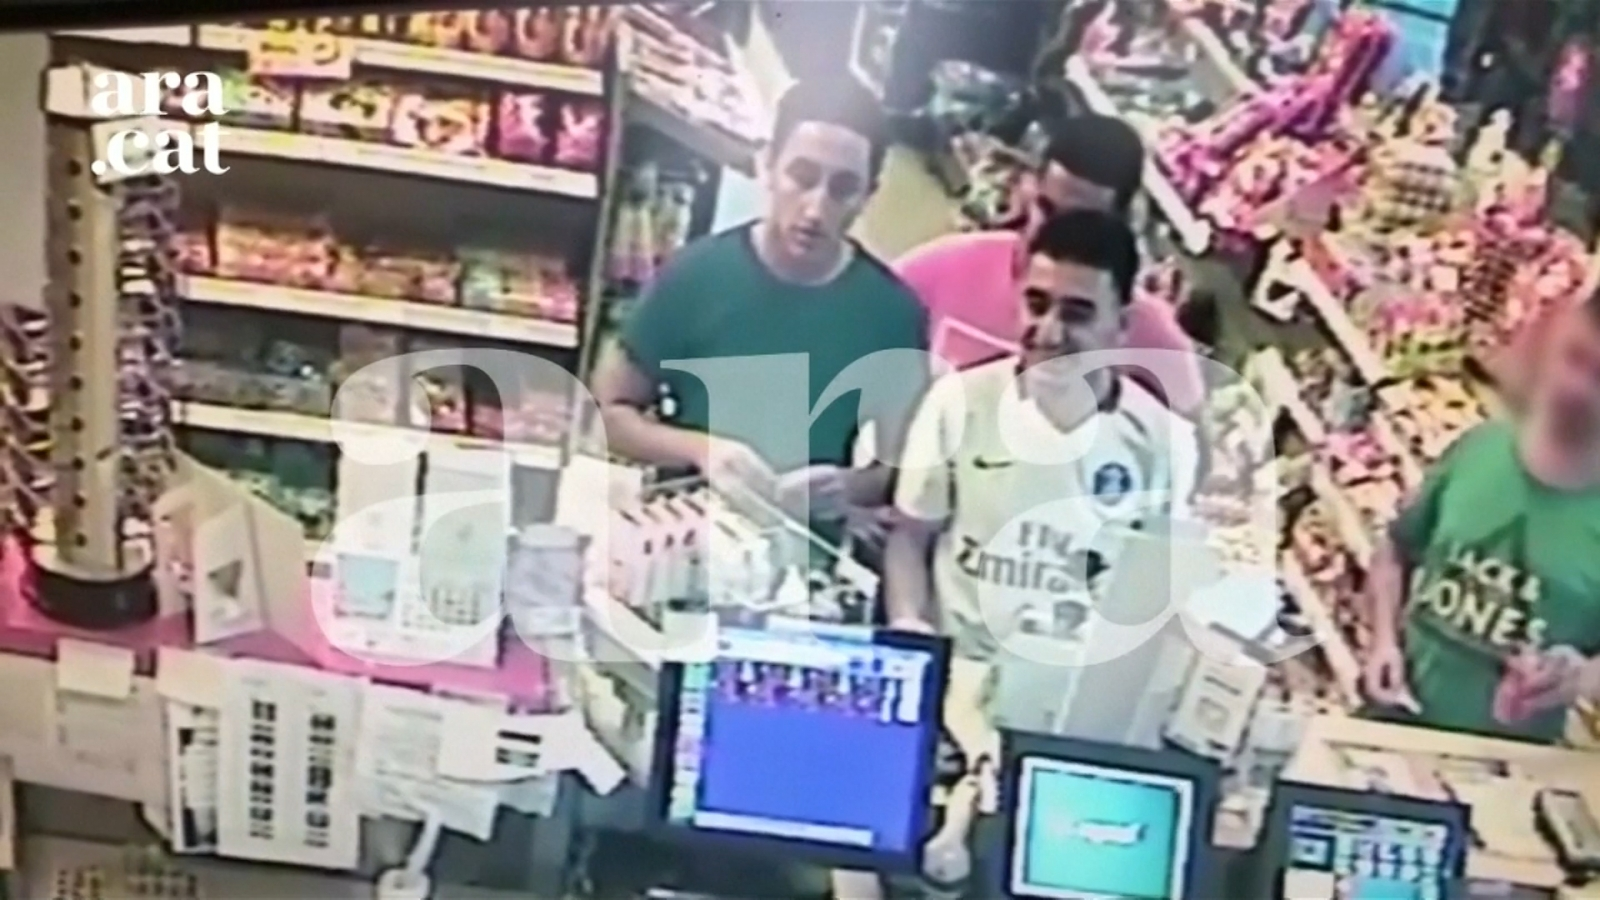 Barcelona Suspects Caught on CCTV Buying Food Hours Before Deadly Terror Attack